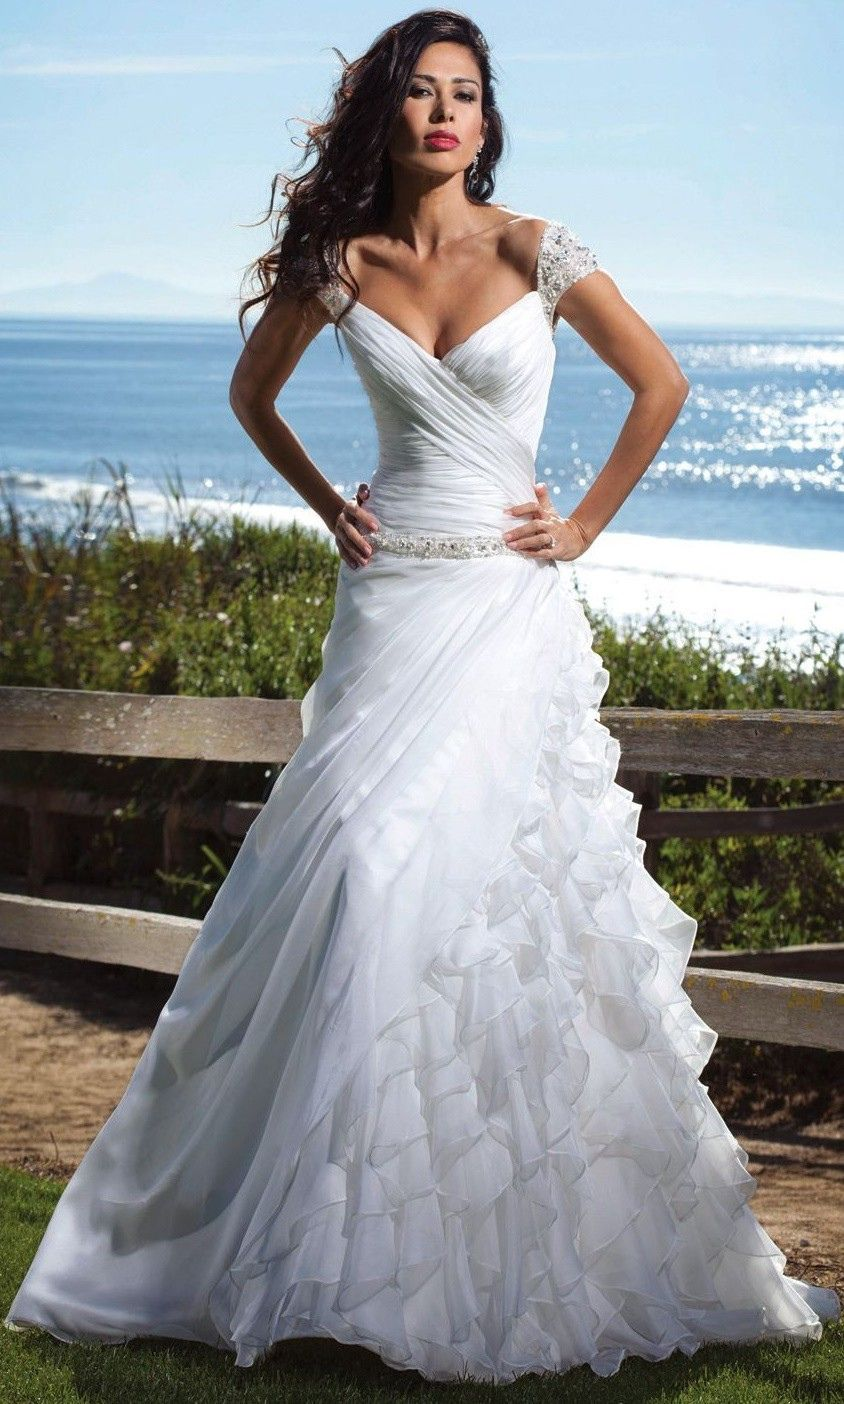 Hawaiian Style Wedding Dresses  Dresses for Guest at Wedding